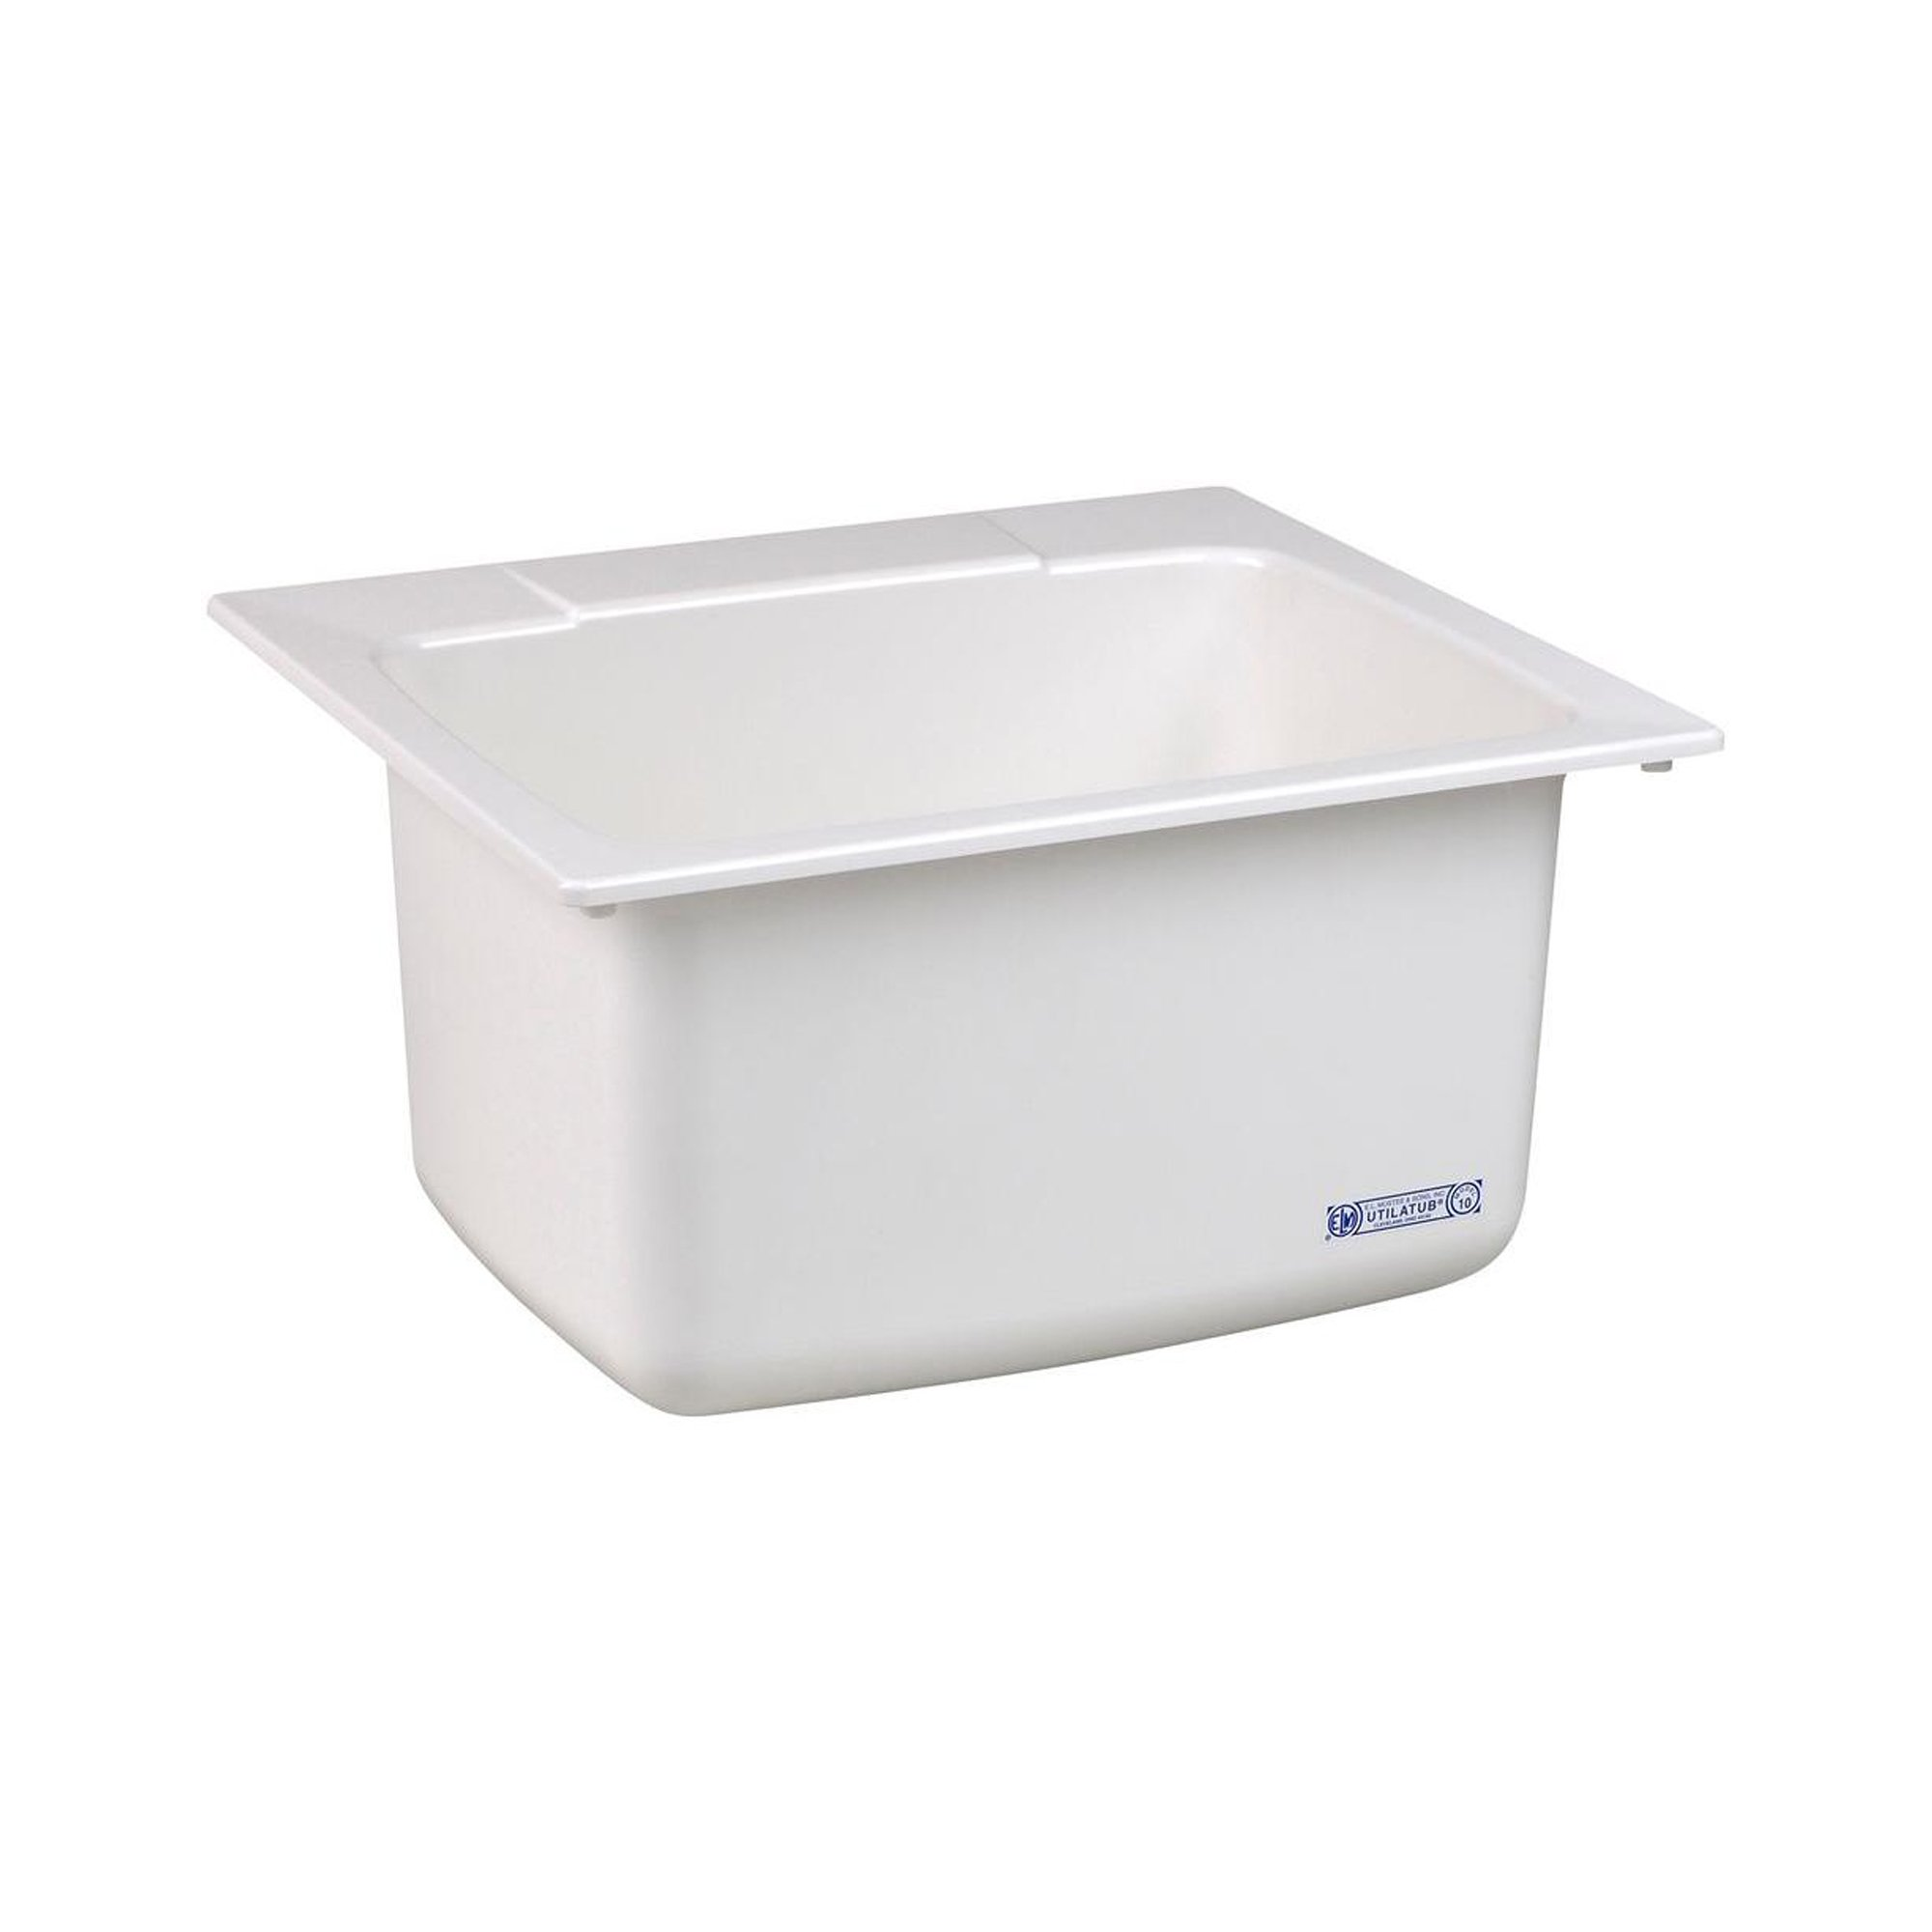 Mustee 10 Utility Sink, 22-Inch x 25-Inch, White by Mustee